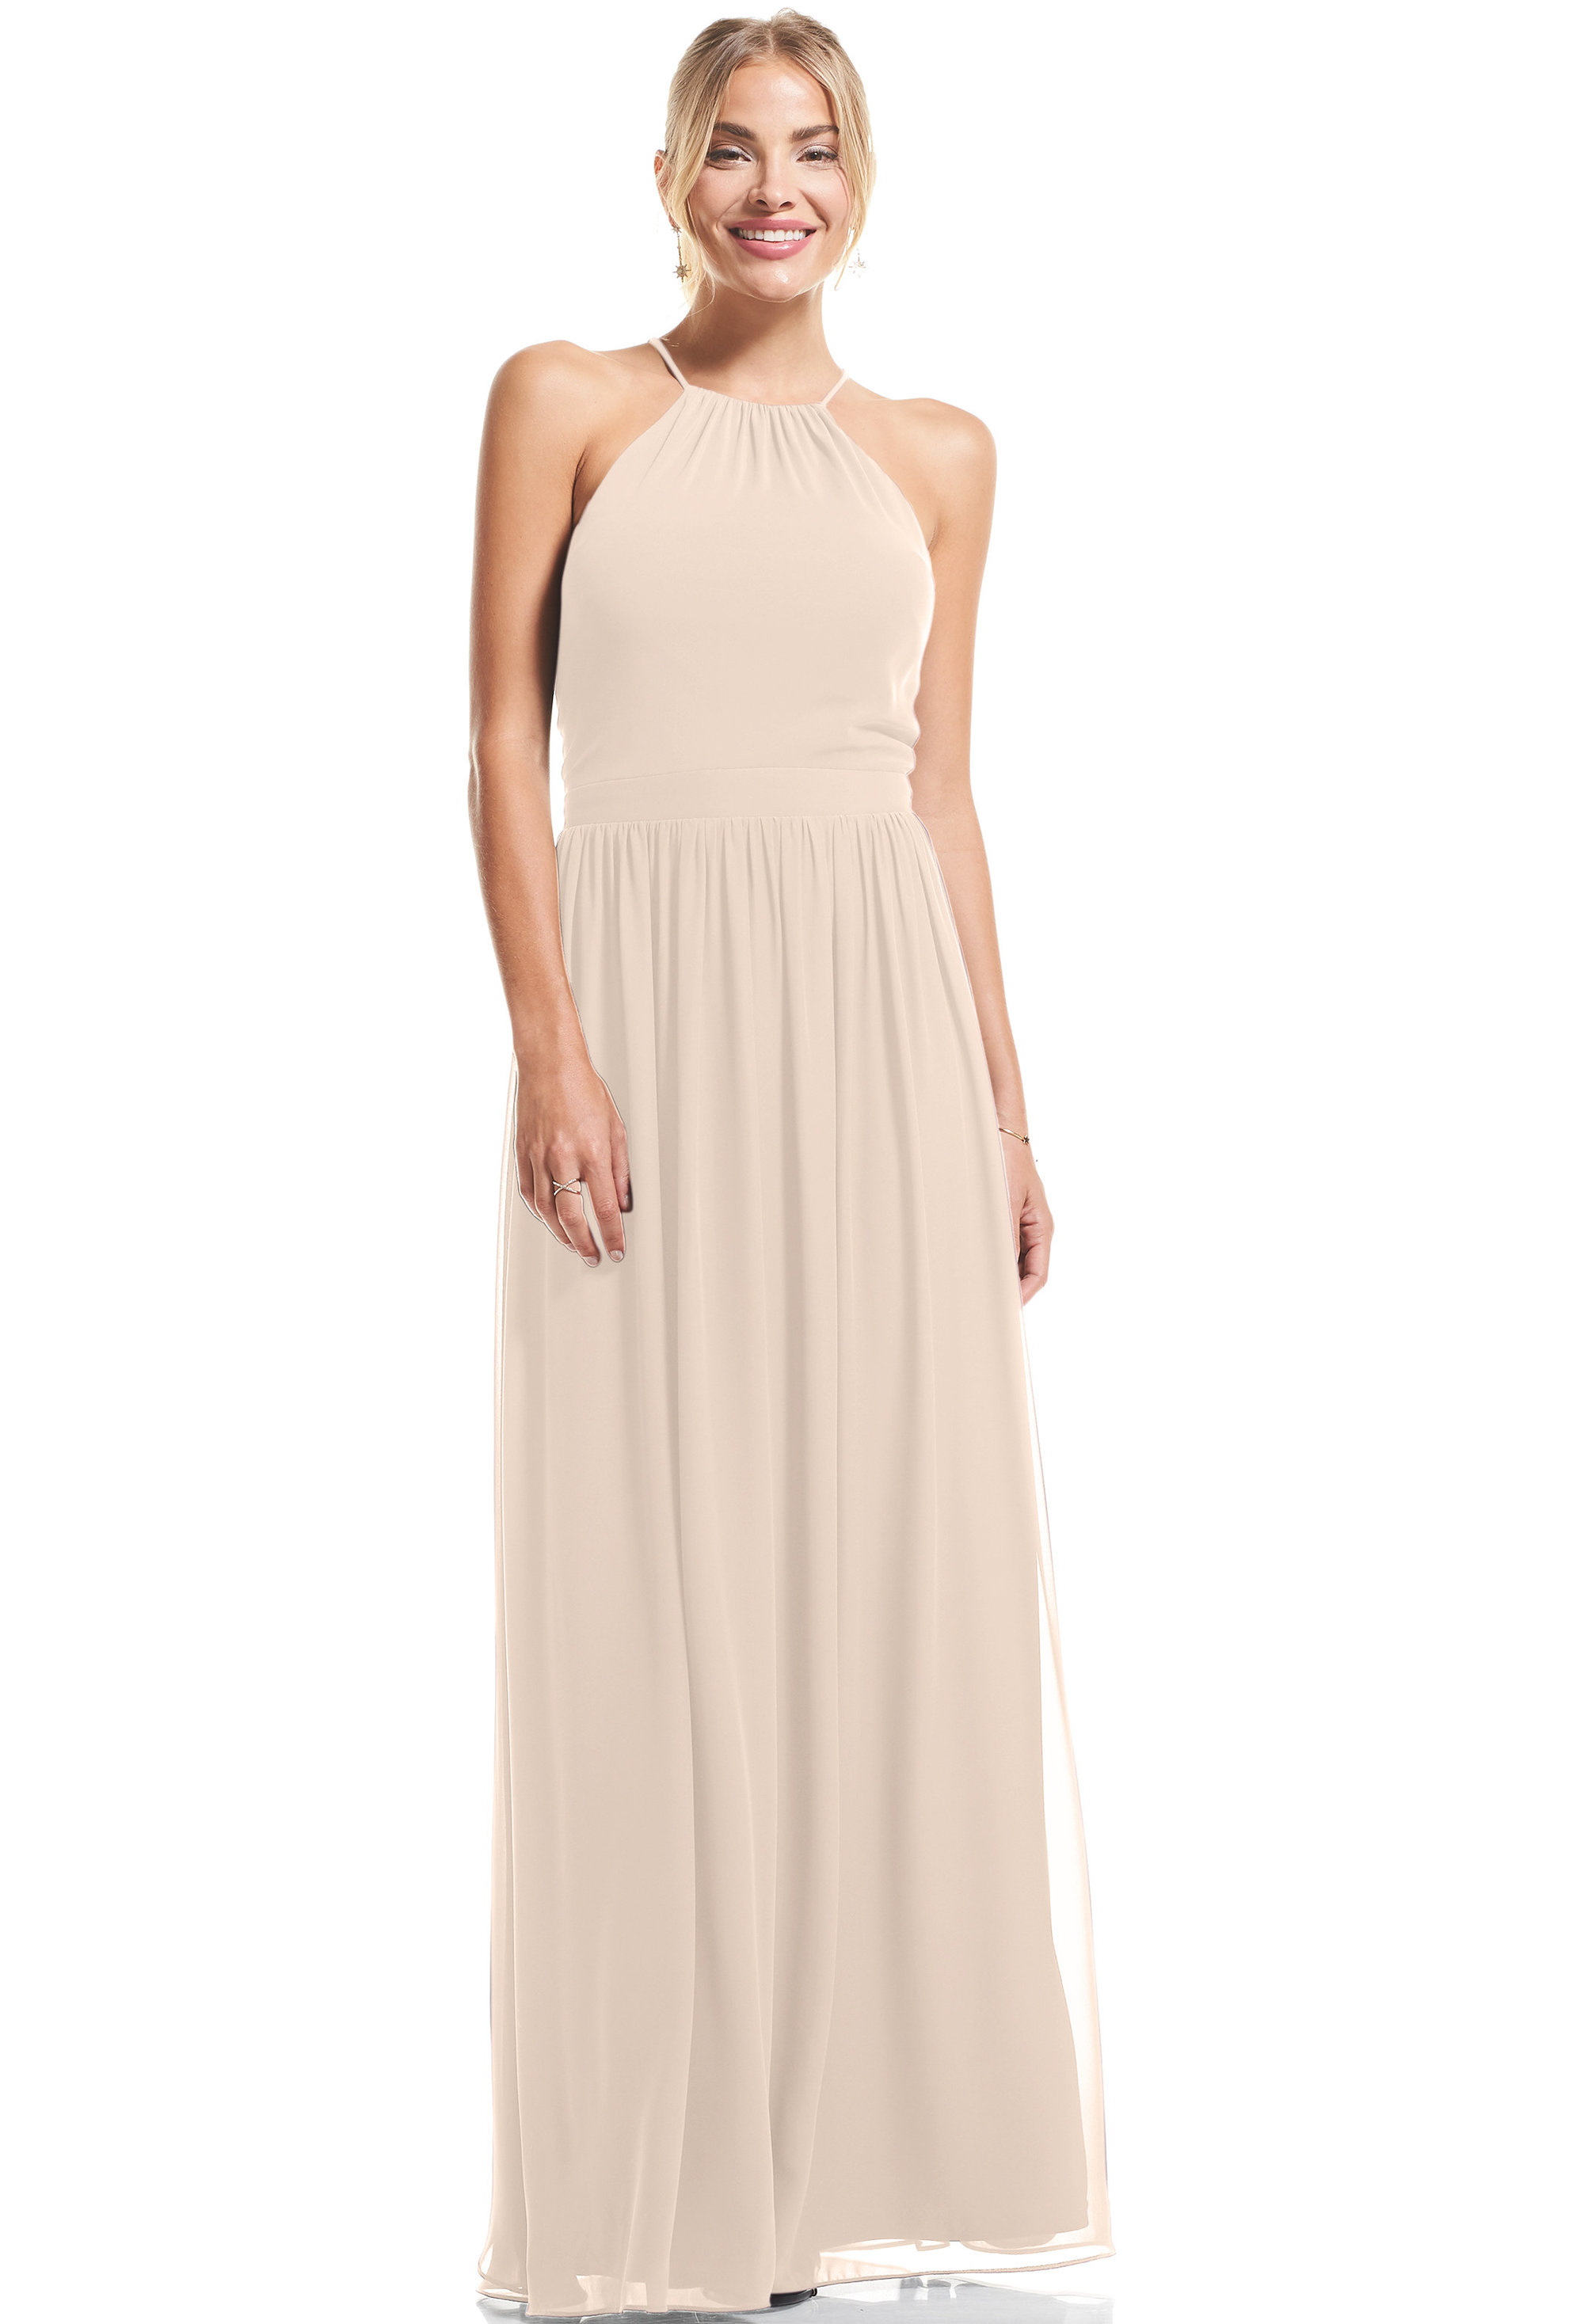 Bill Levkoff IVORY Chiffon Halter A-Line gown, $89.00 Front